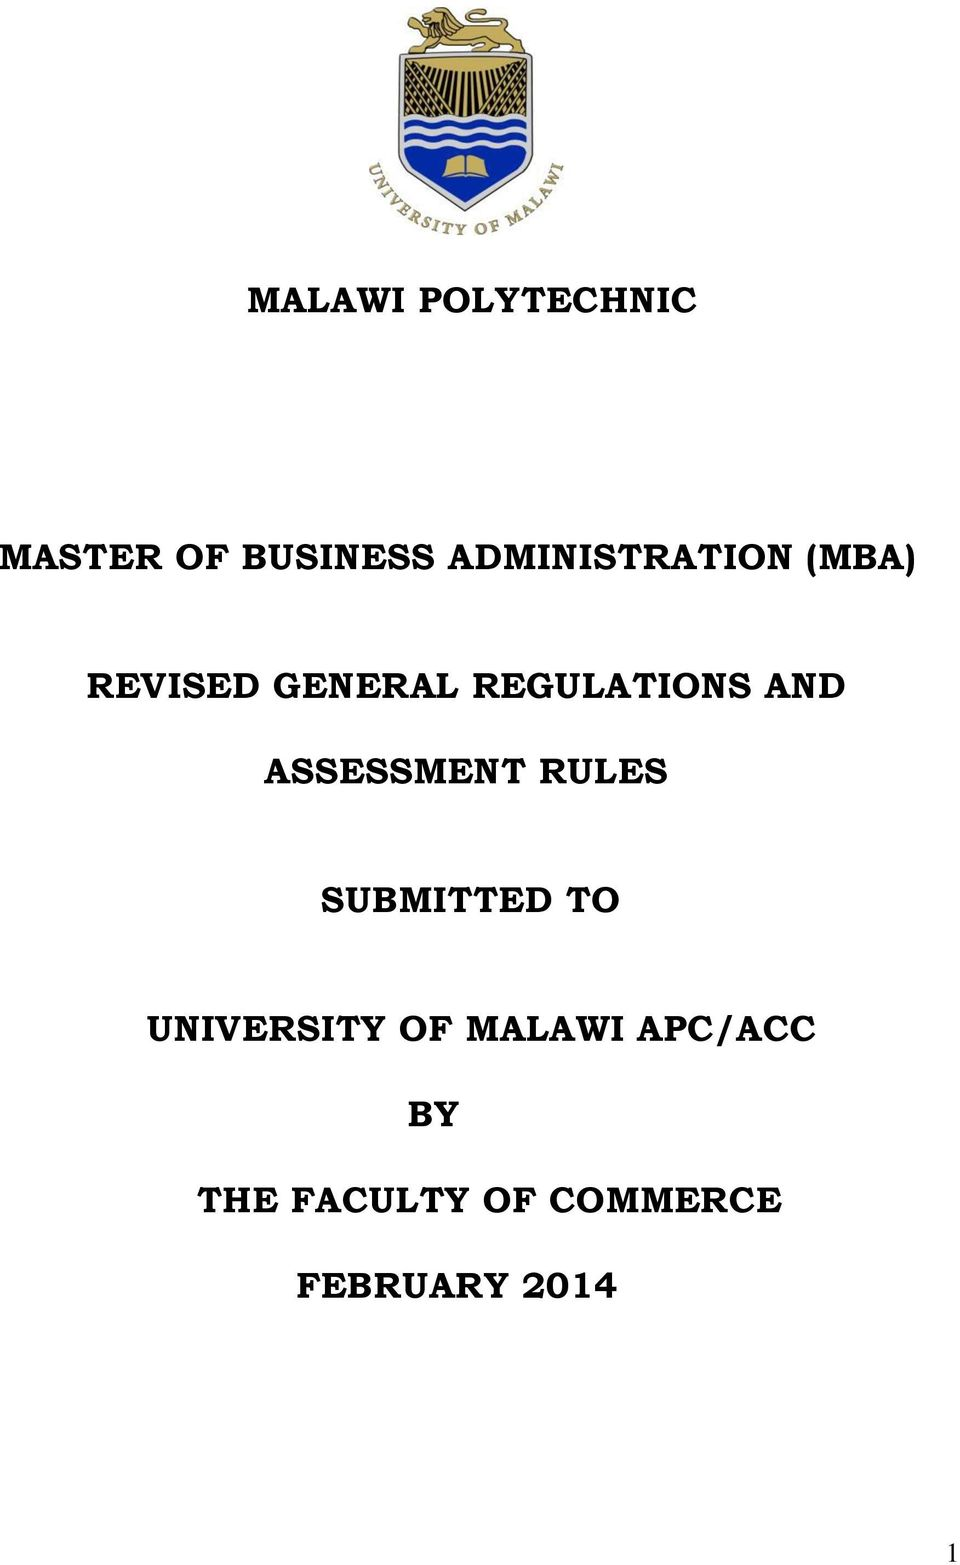 REGULATIONS AND ASSESSMENT RULES SUBMITTED TO